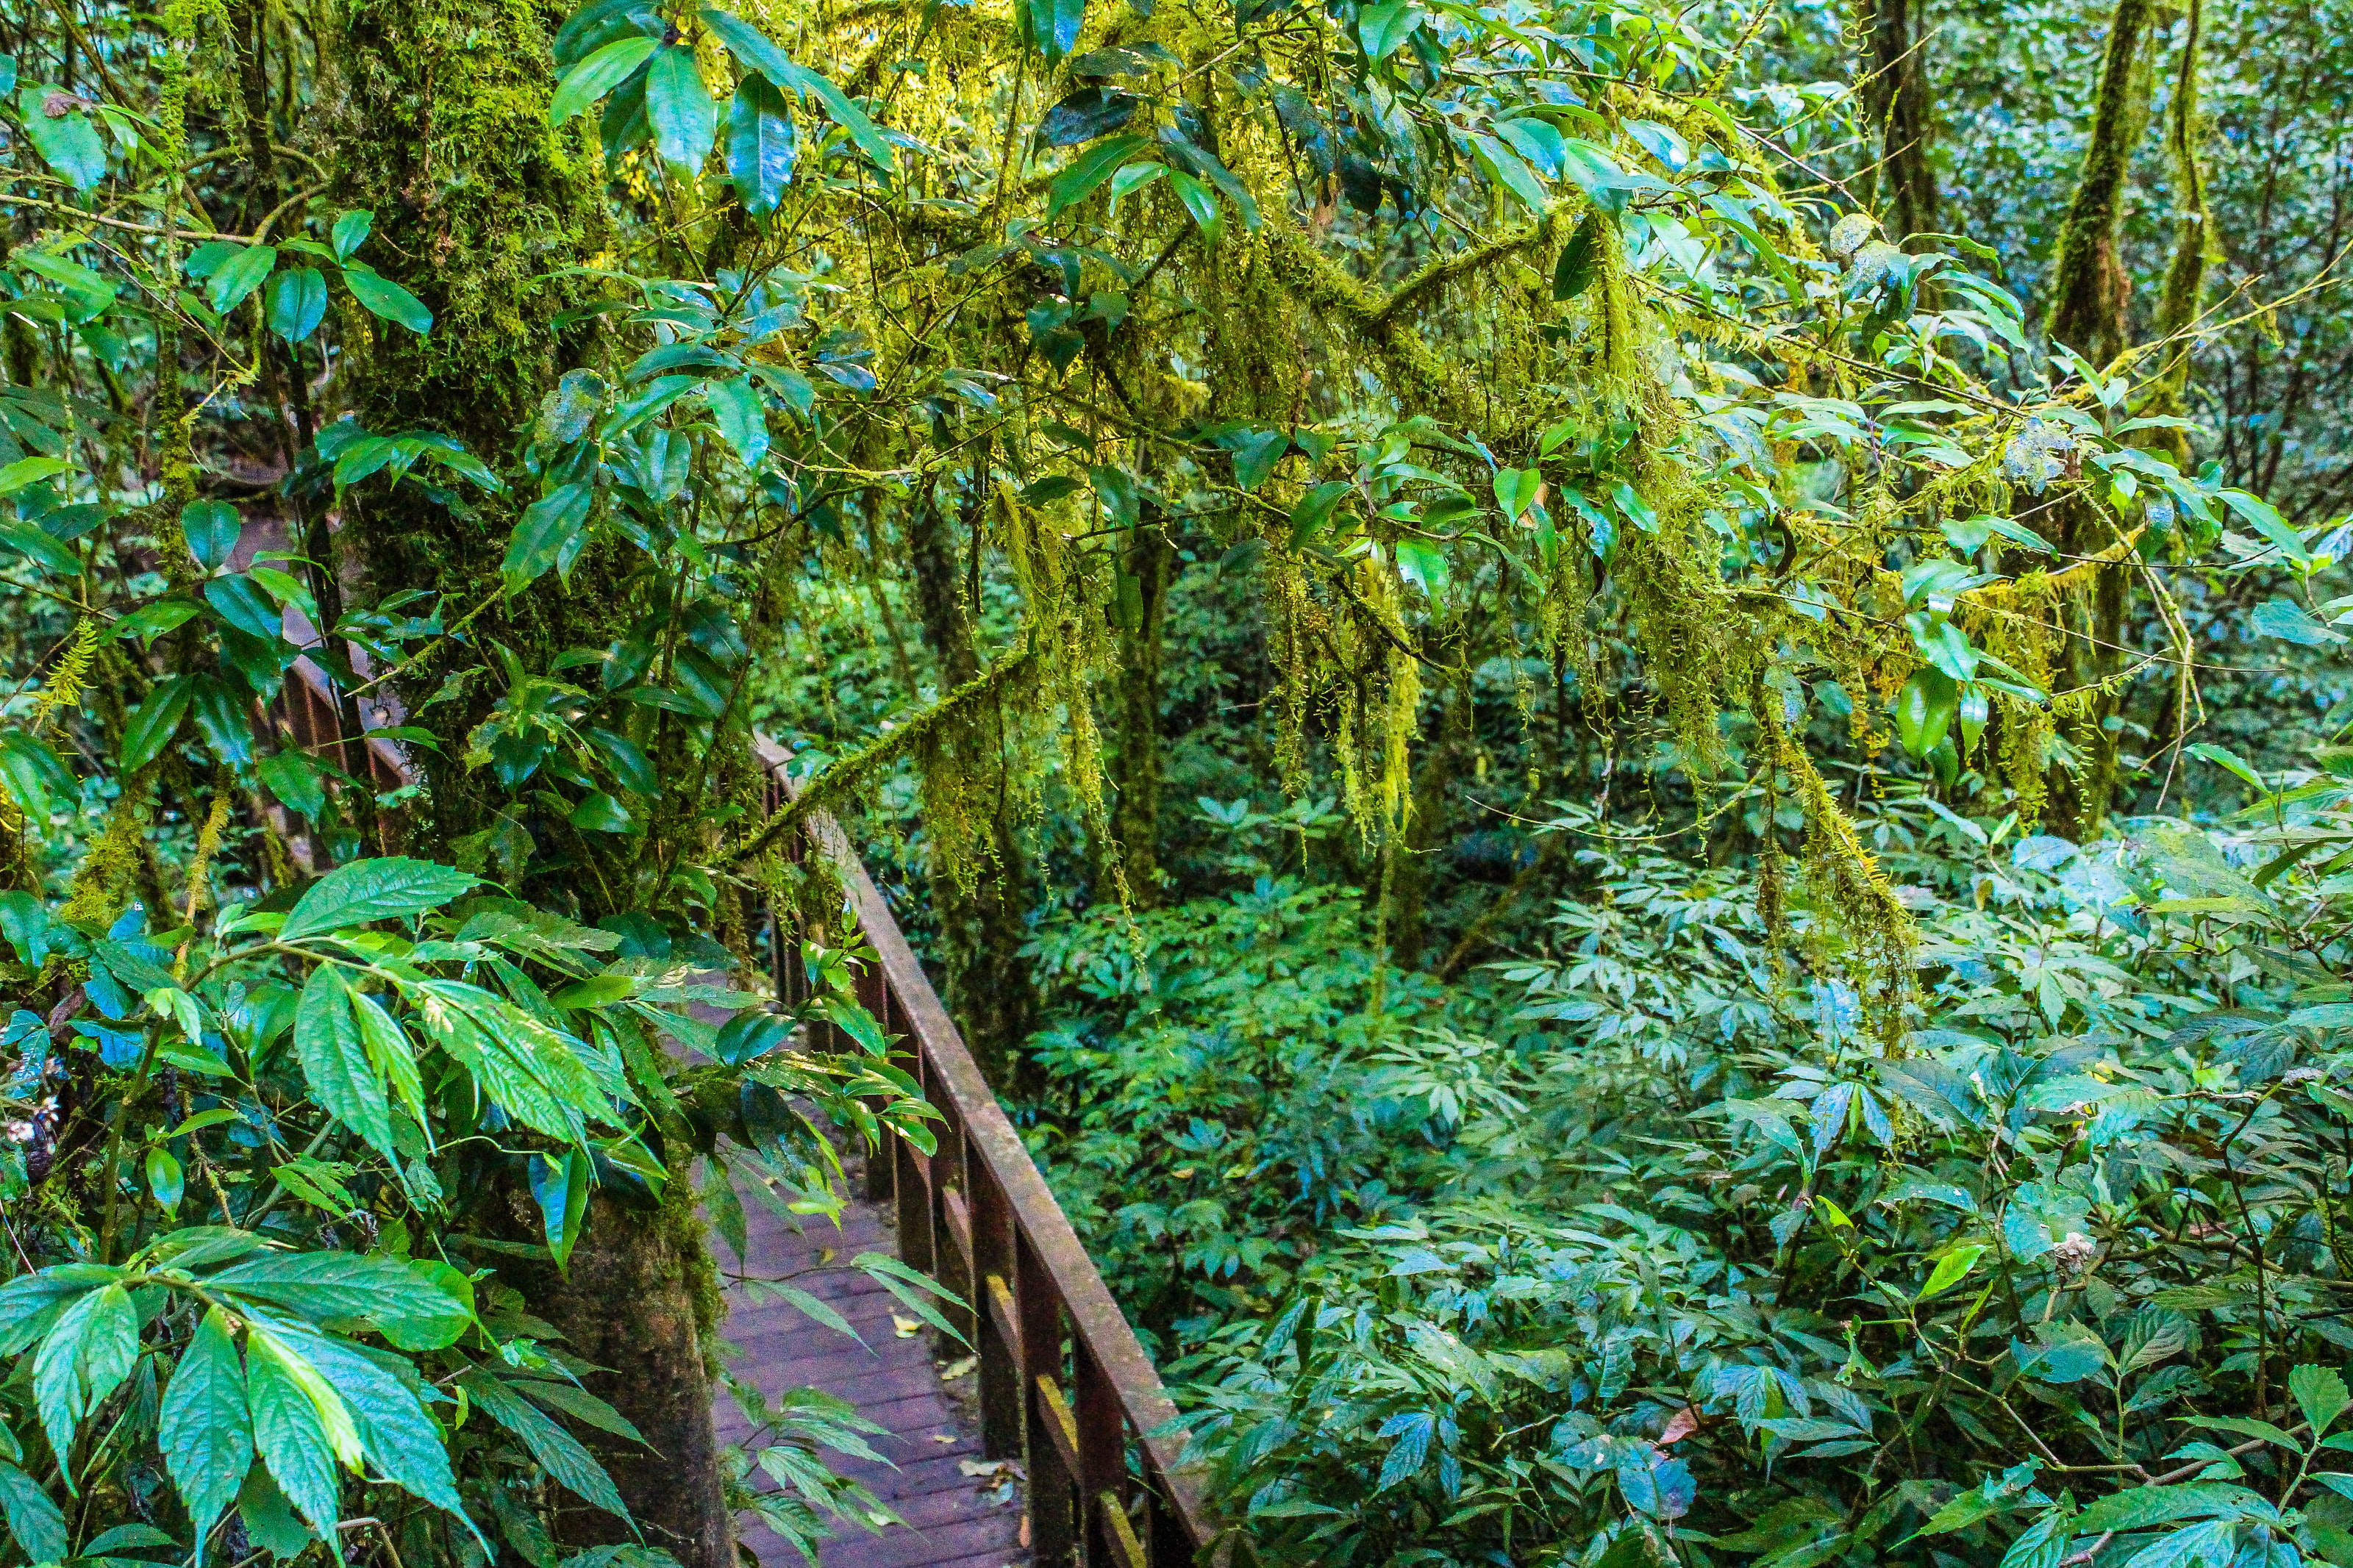 Green Trees, Trail, Plant, Rainforest, Scenery, HQ Photo